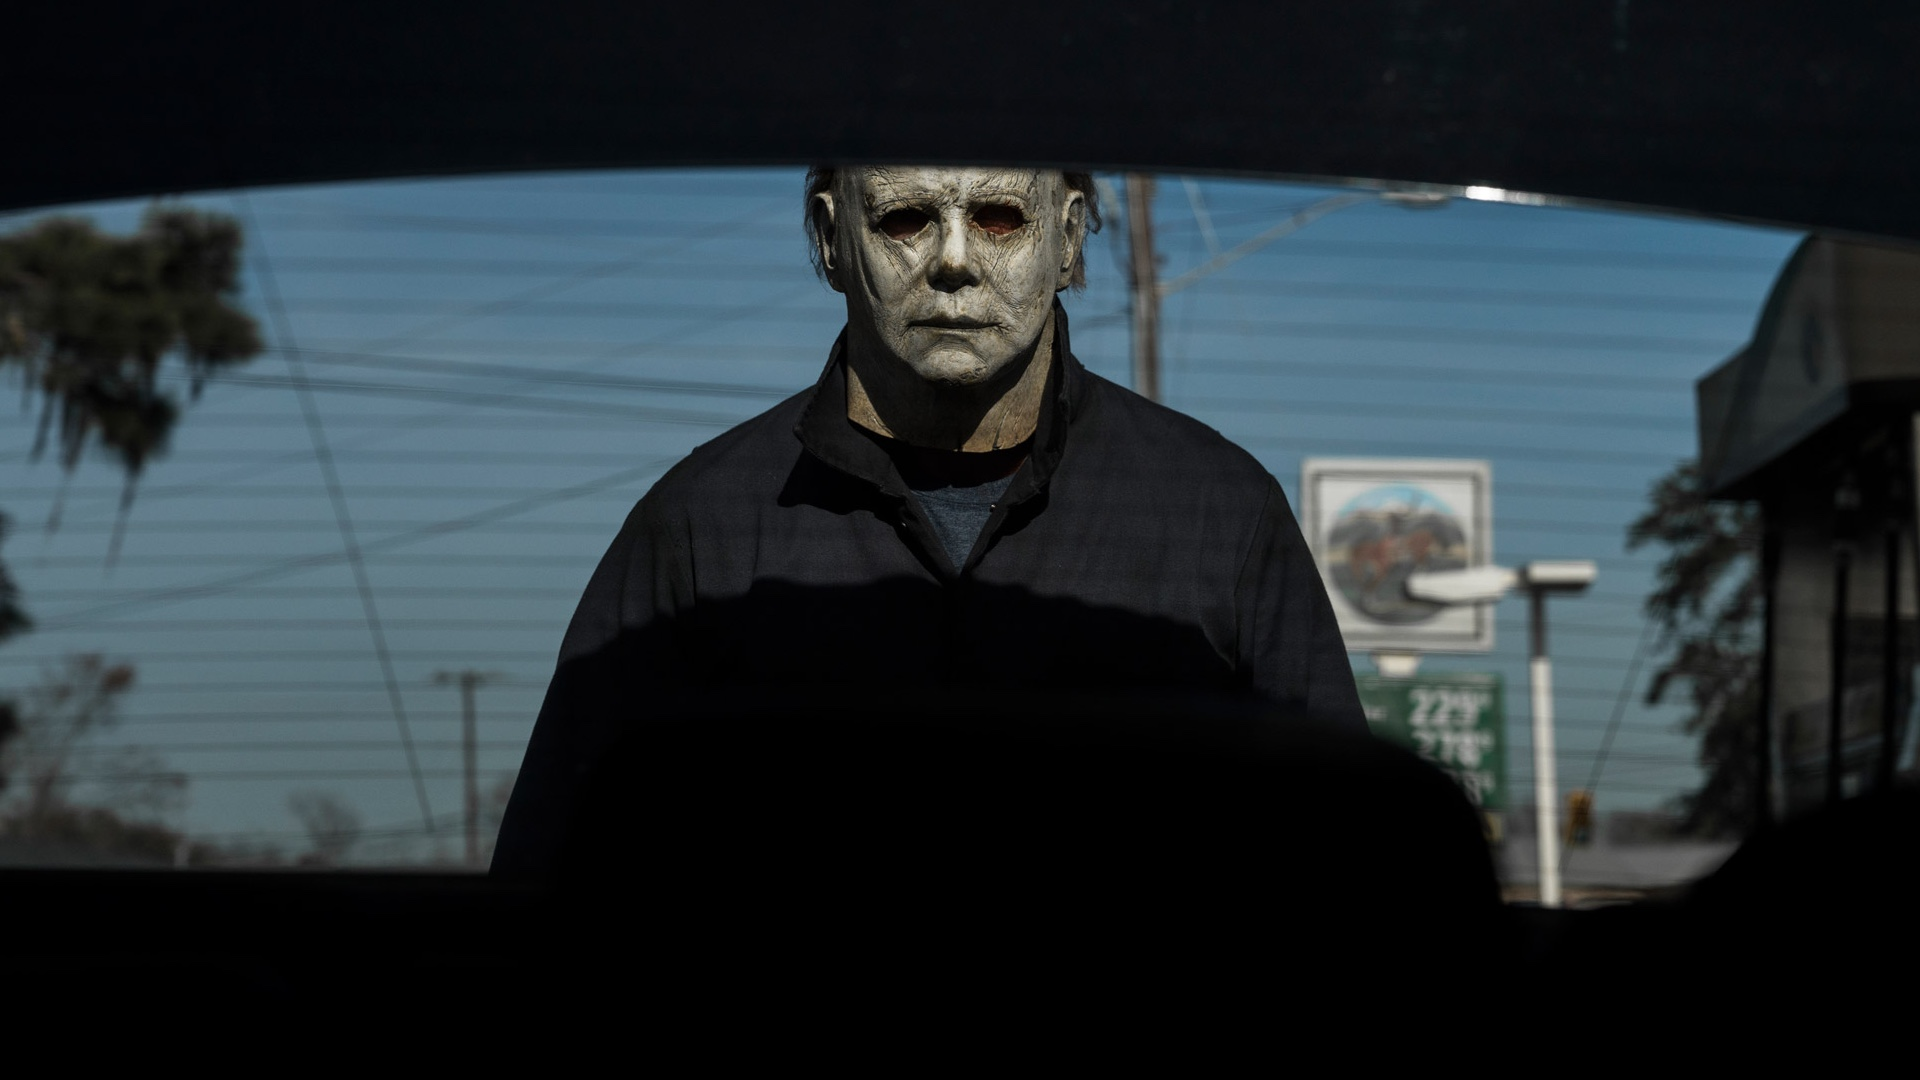 Halloween 2020 Getting A Sequel The HALLOWEEN Sequel Will Reportedly Start Shooting This Fall with